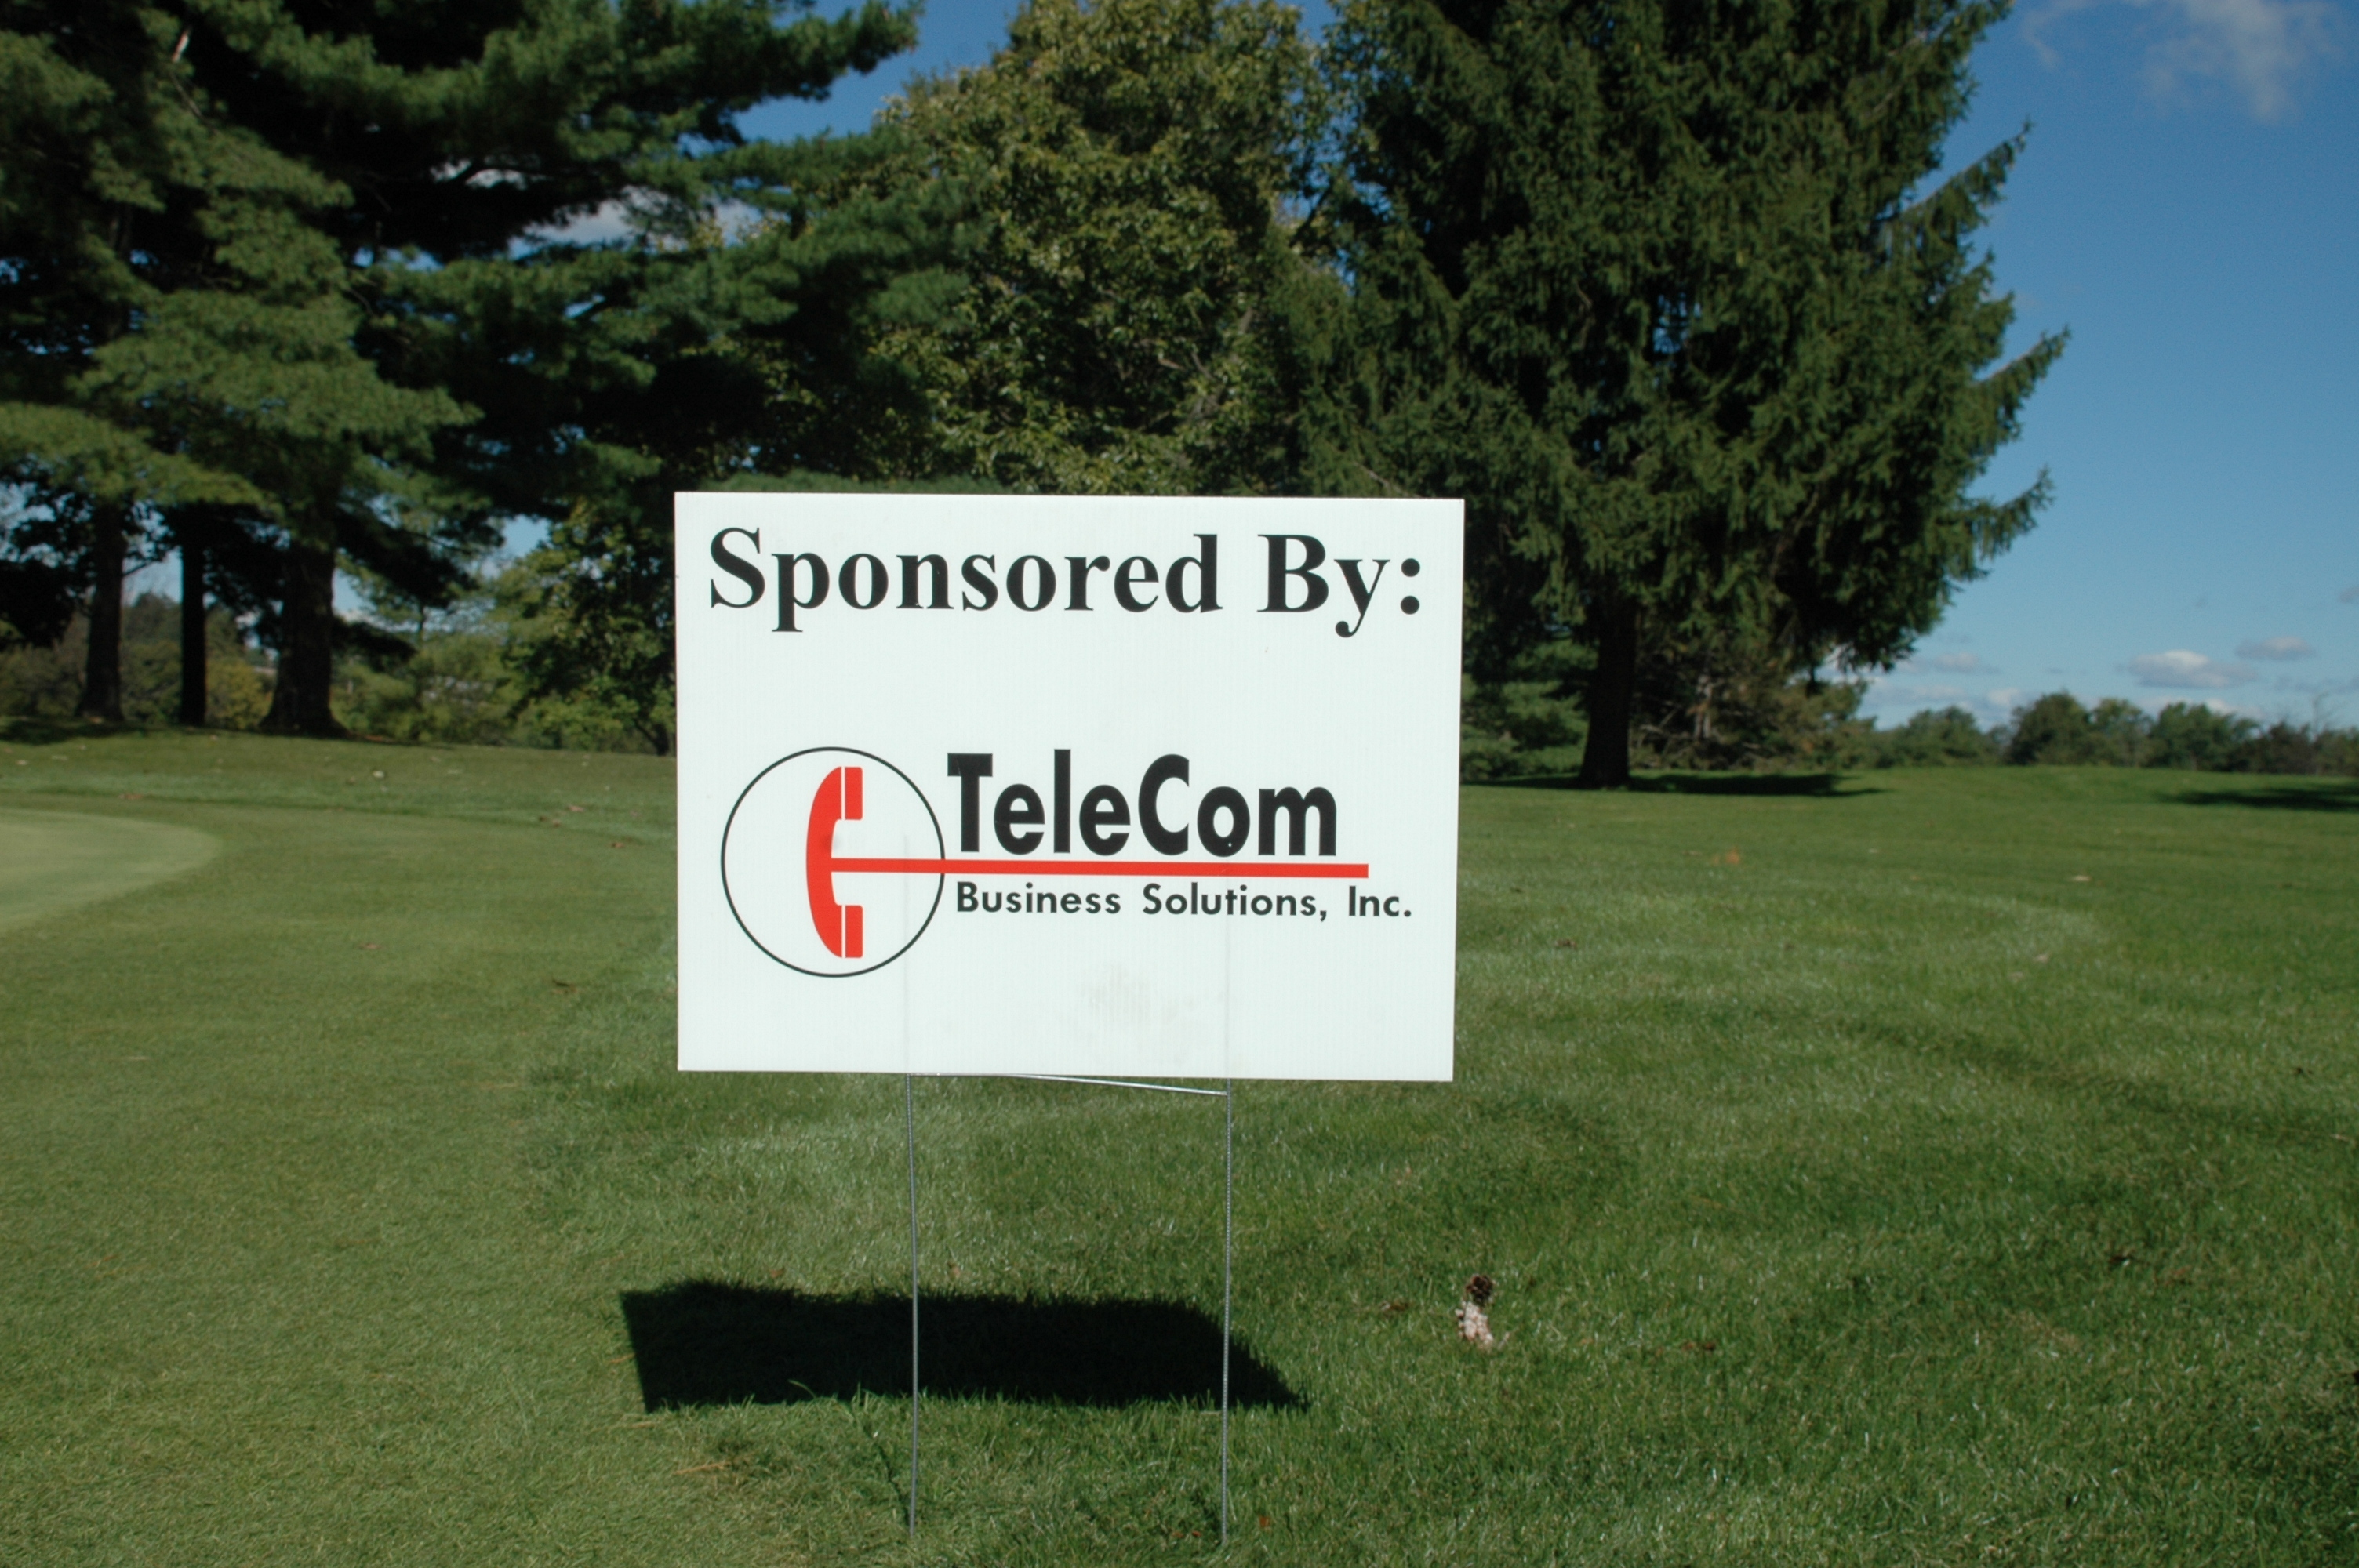 Servants 11th Annual Golf Outing - Default Image of Hole Sponsor